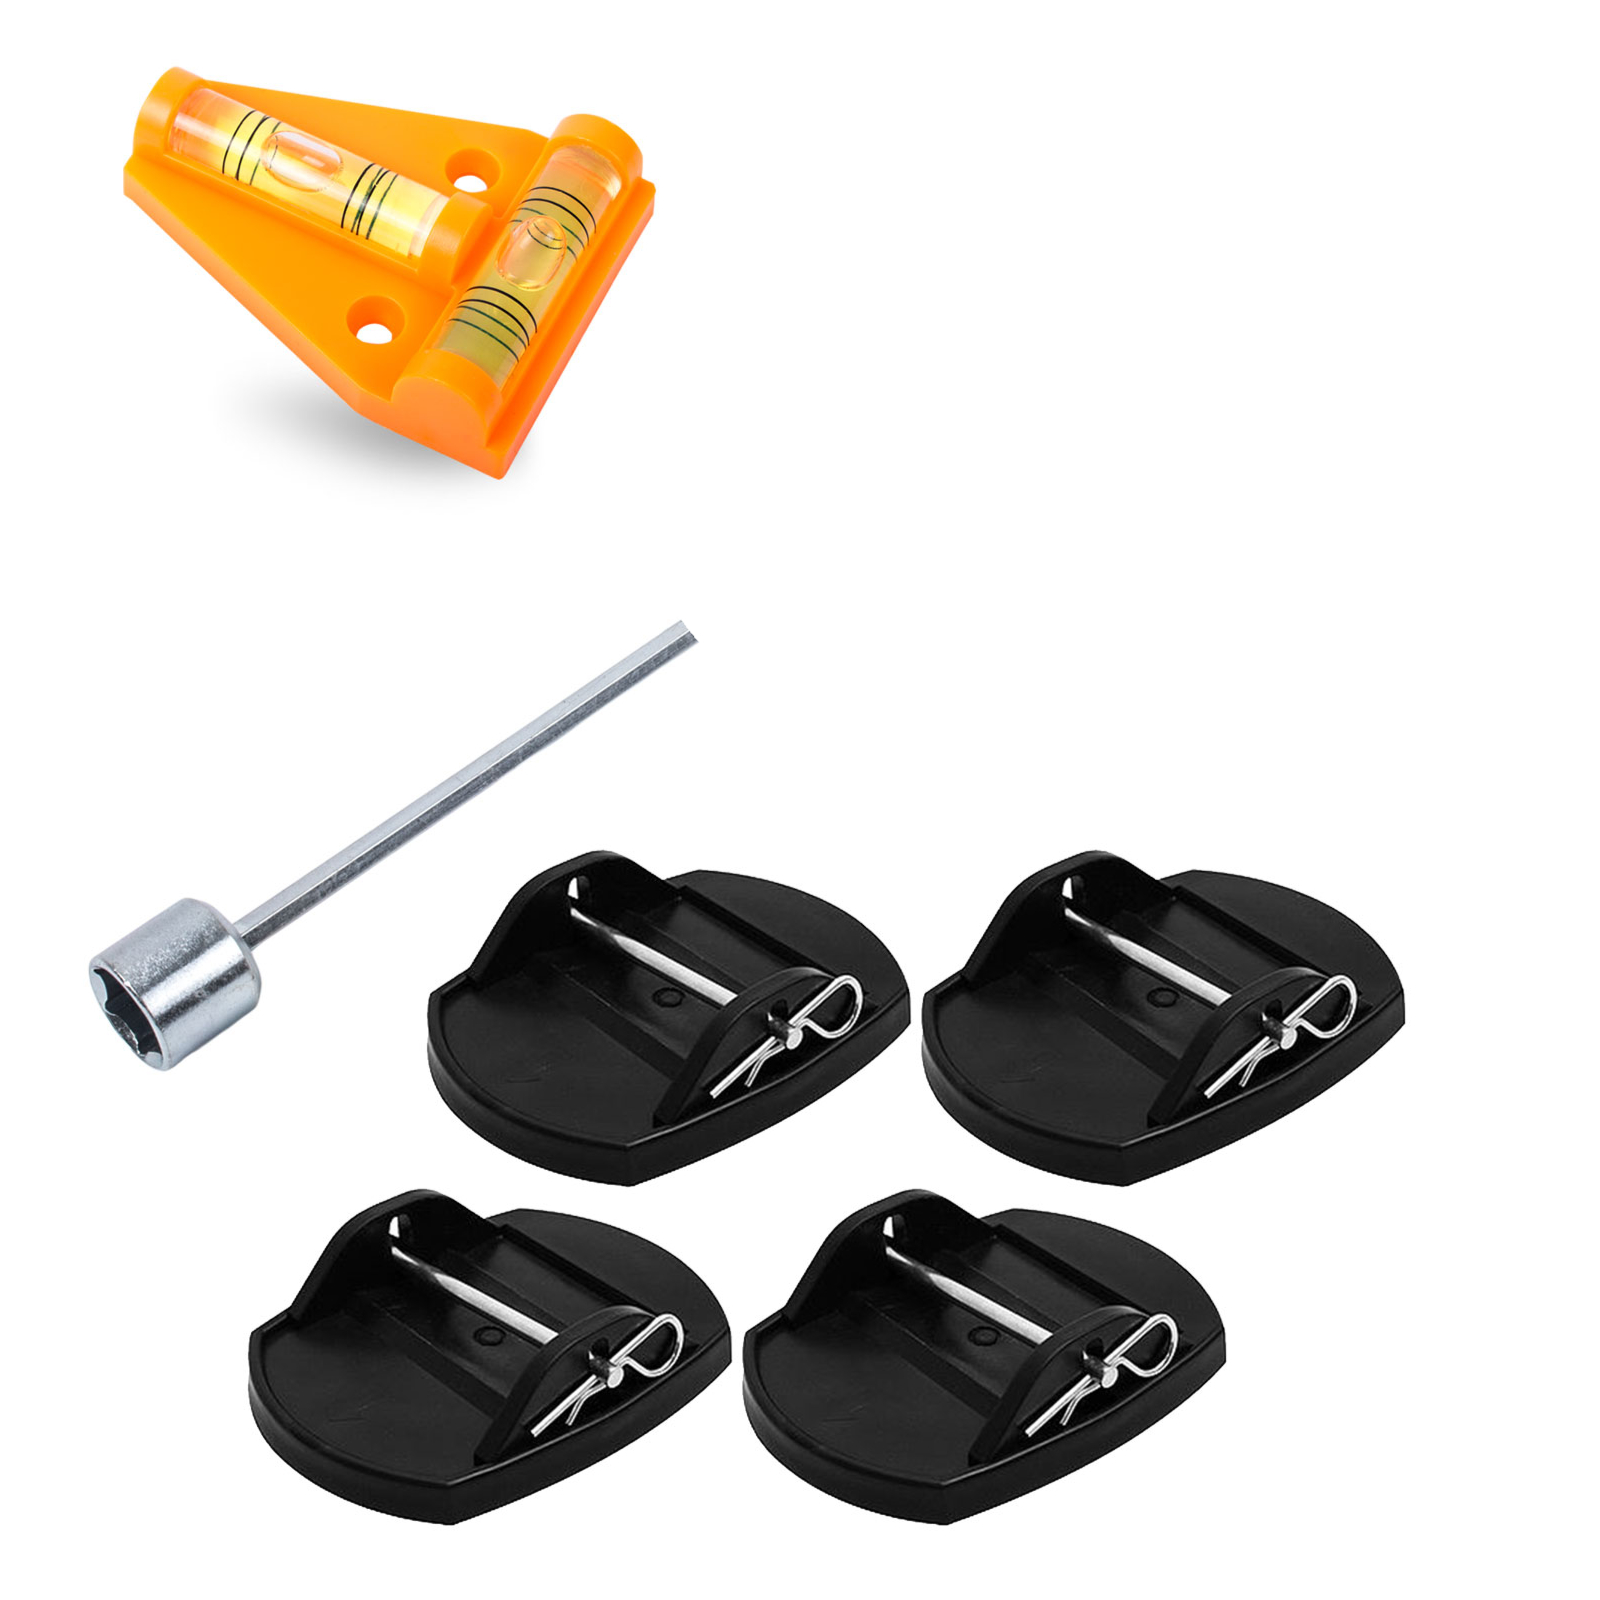 Support plates including cordless screwdriver attachment 130mm and cross level